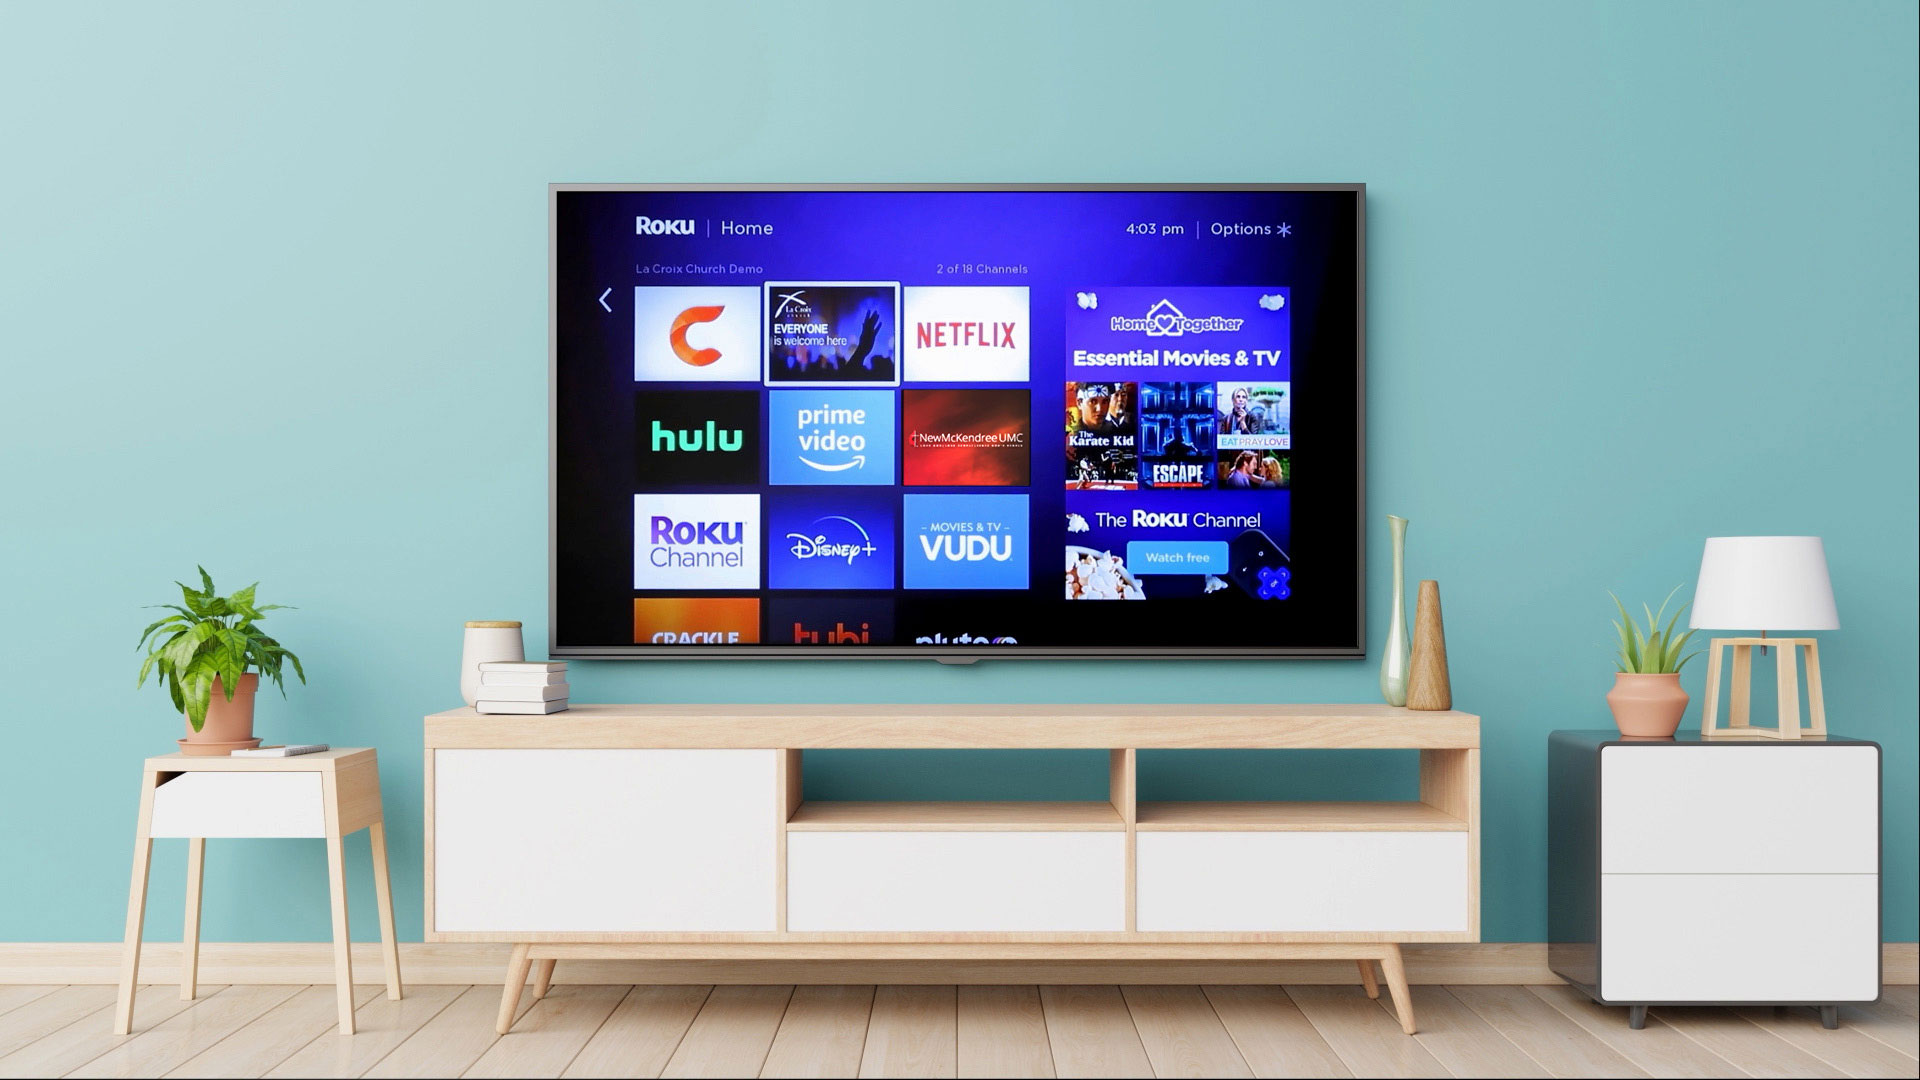 photo of creative edge inc's custom streaming tv apps on a smart tv